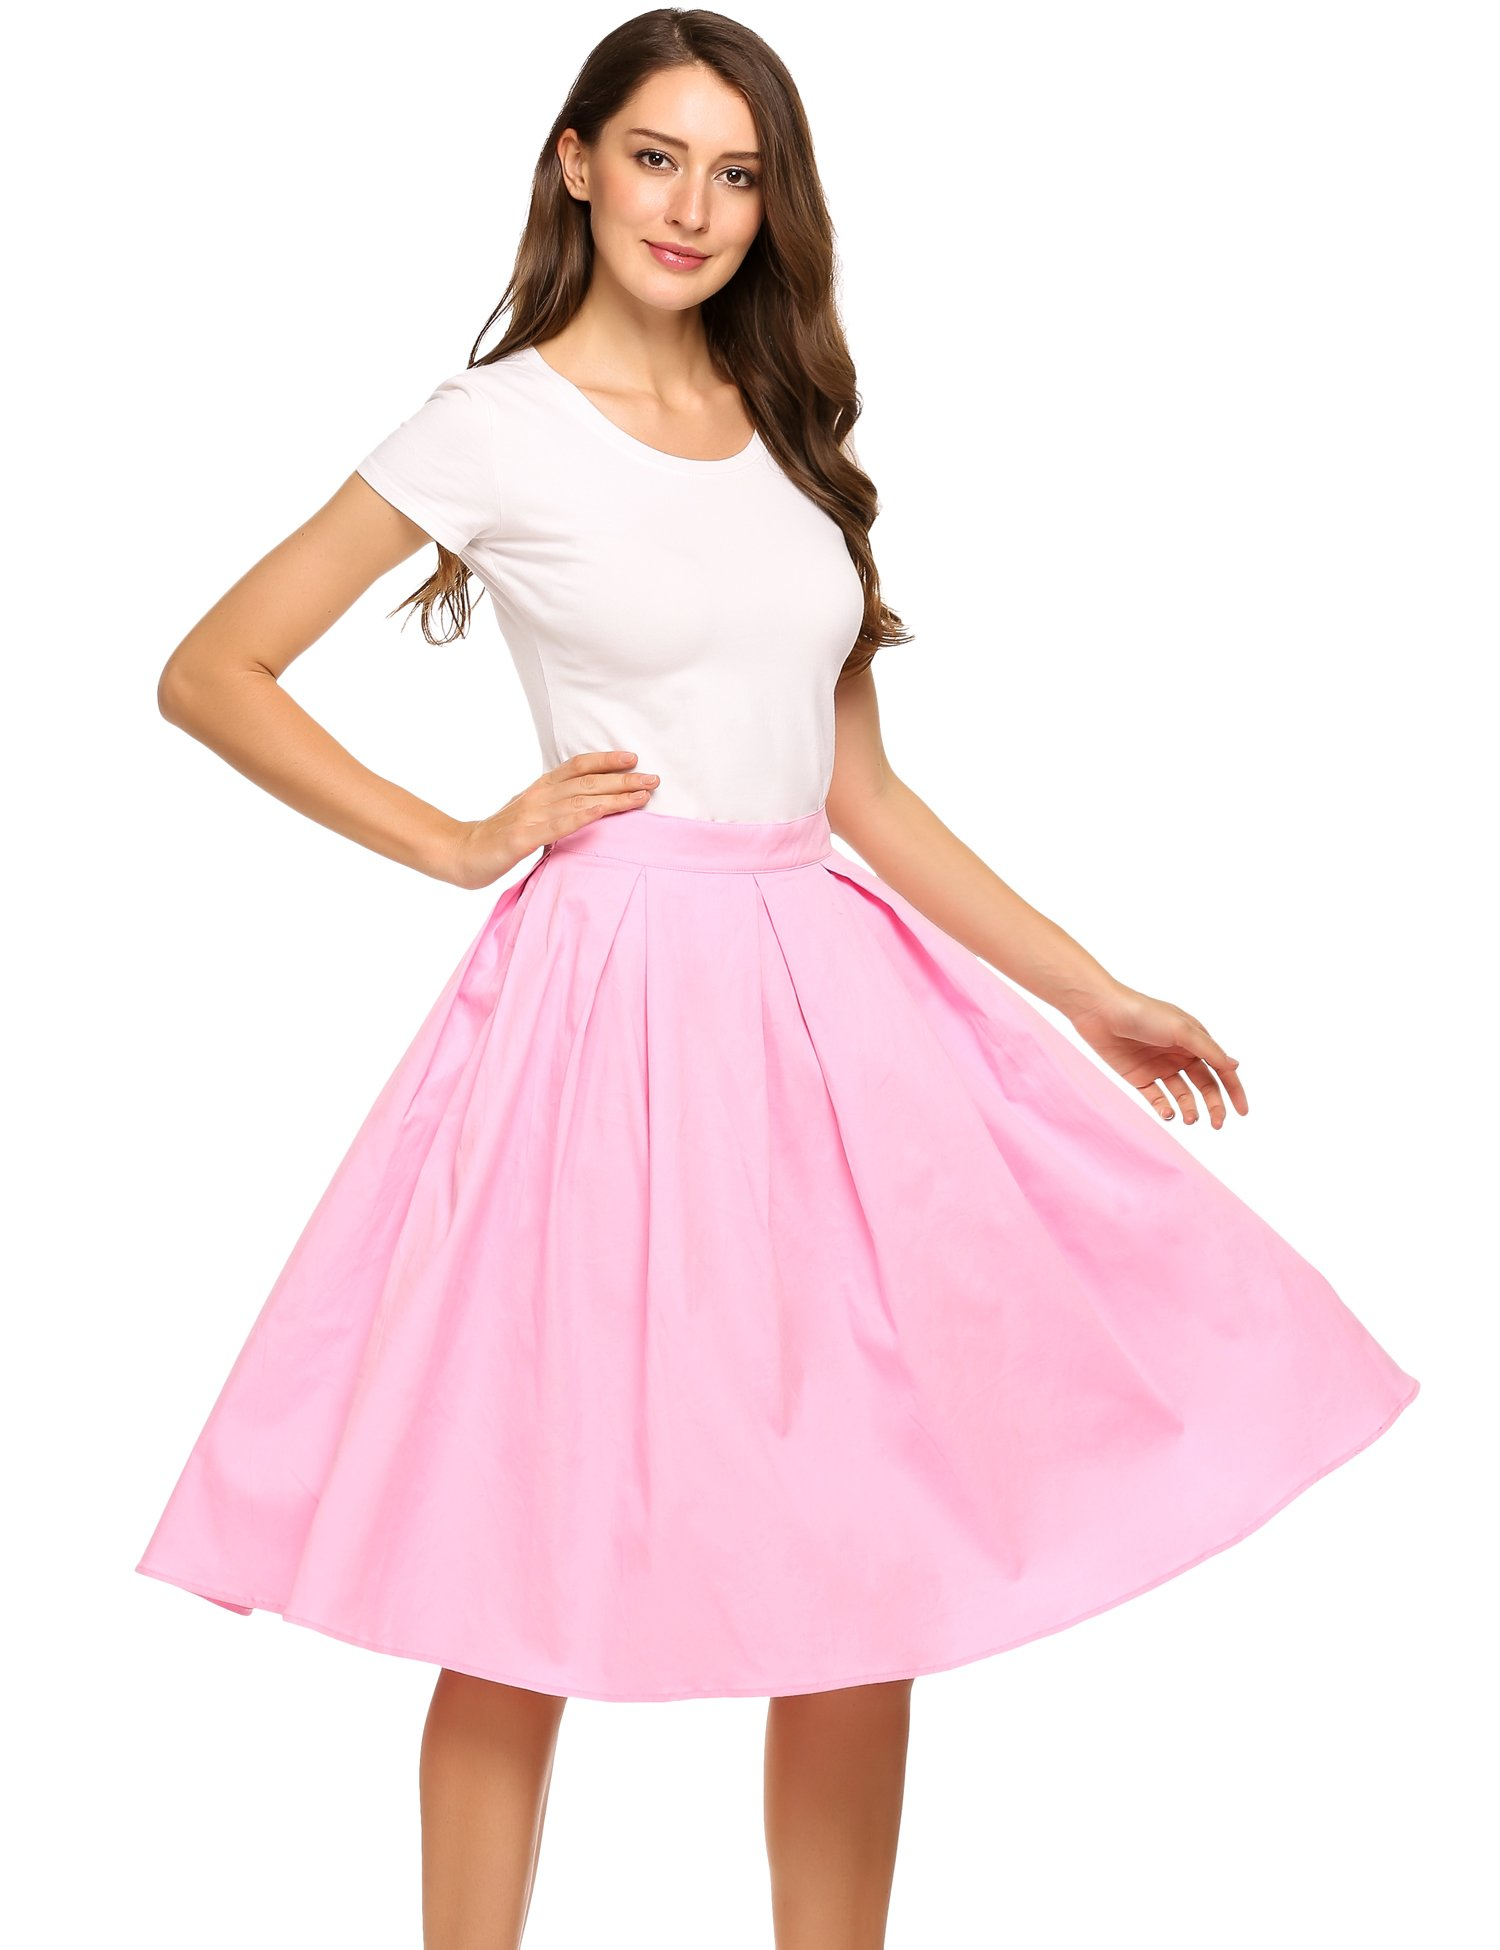 Zeagoo Women's Vintage High Waist A-line Pleated Midi Swing Skirts Knee Length with Pockets (M, Pink A)